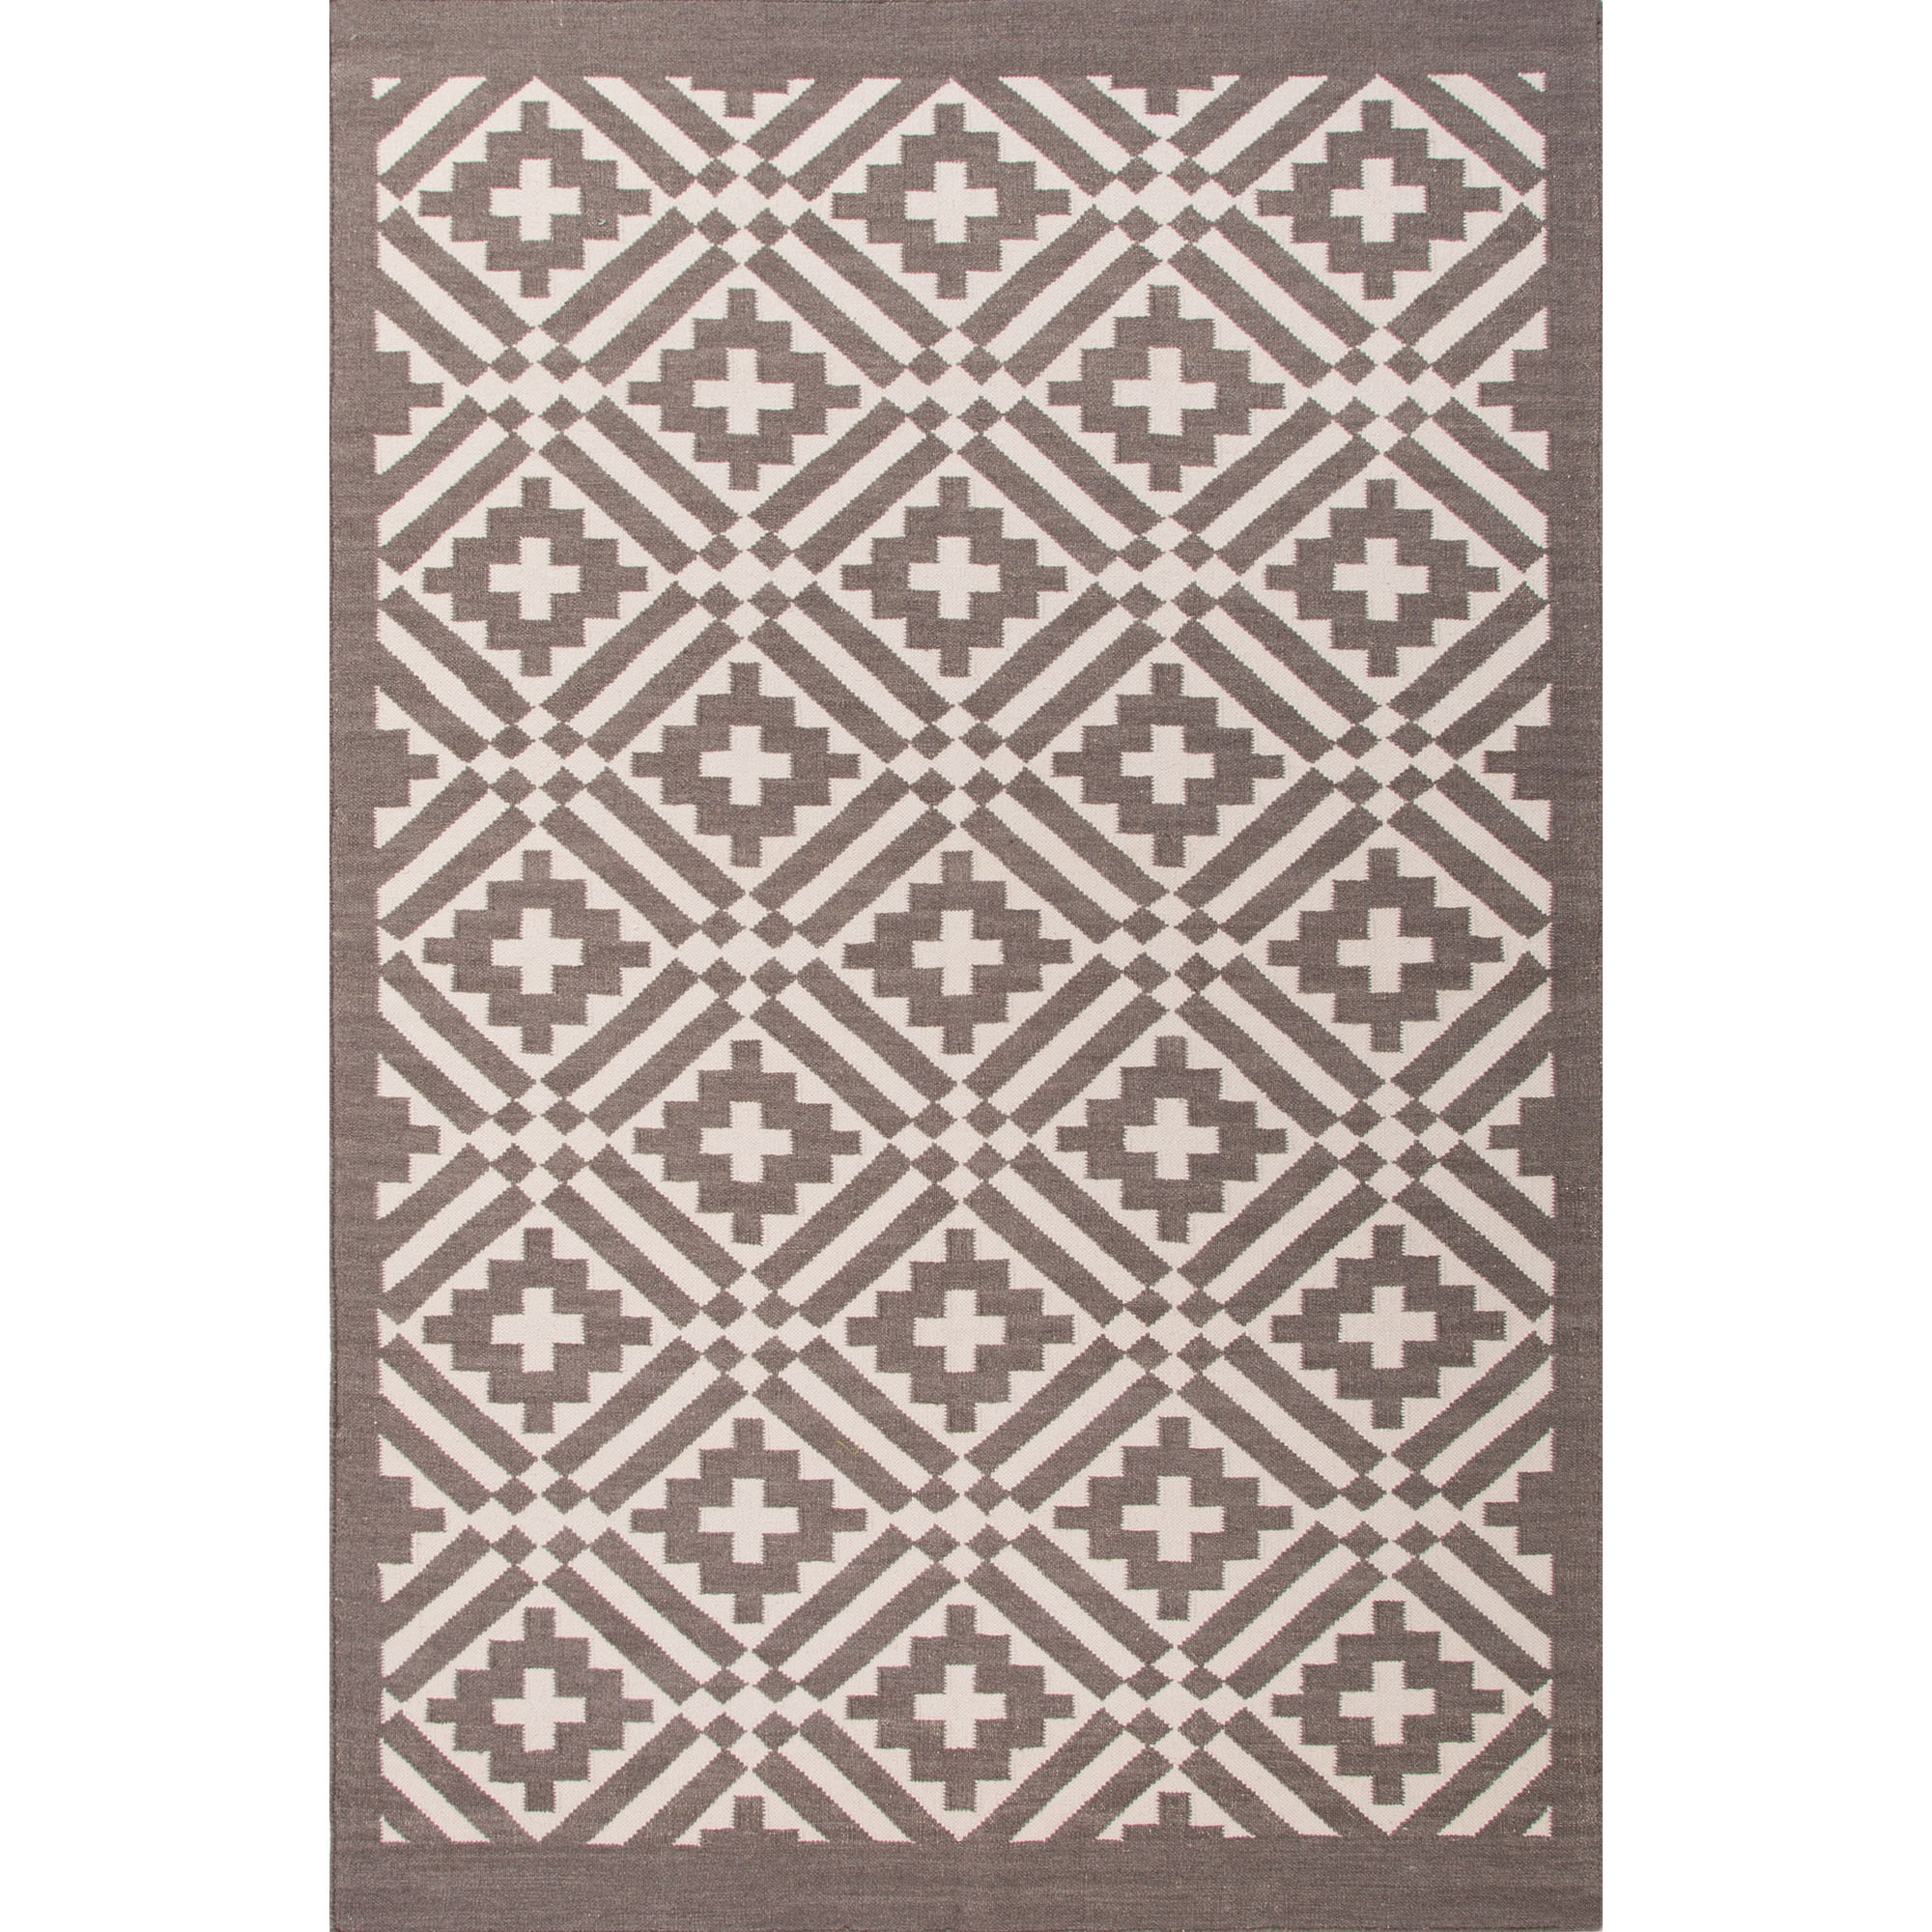 JAIPUR Rugs Urban Bungalow 2 x 3 Rug - Item Number: RUG112233